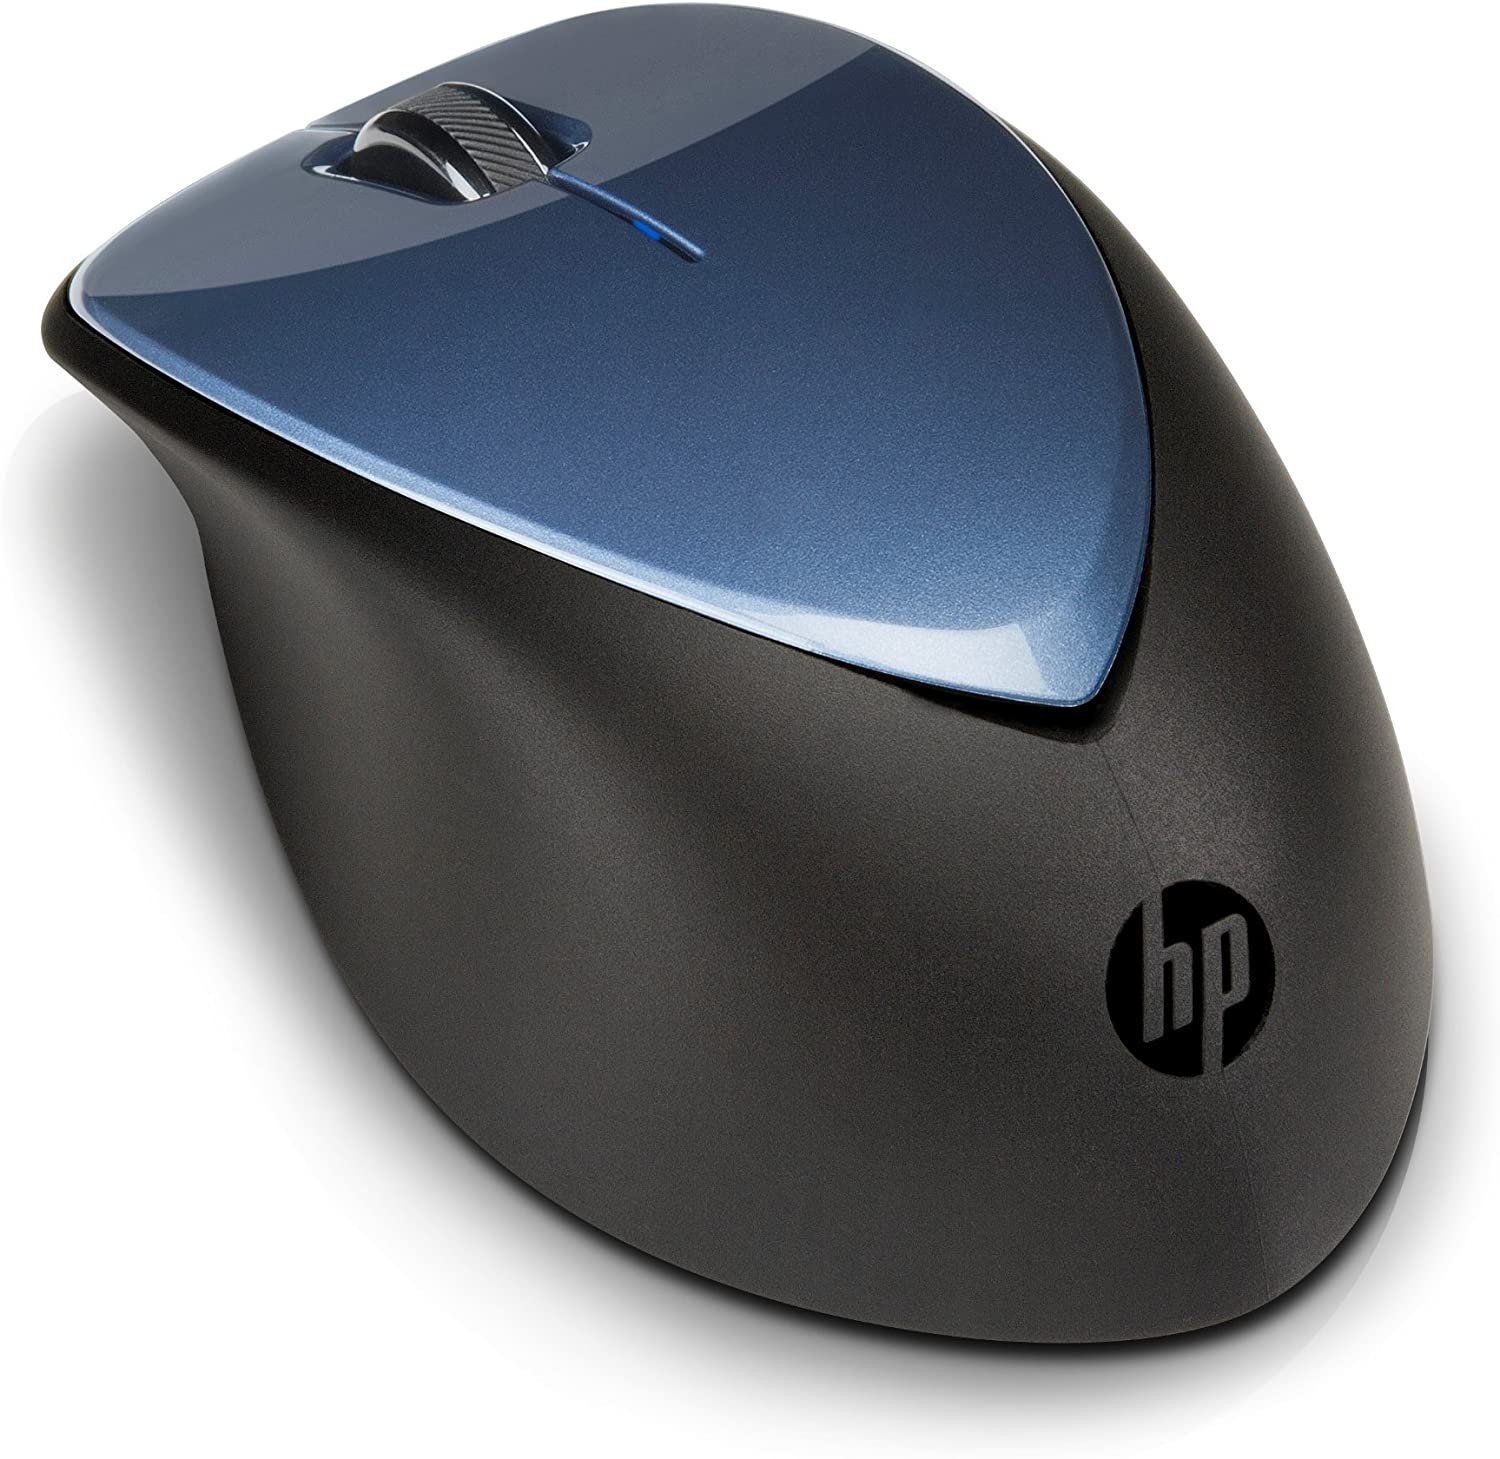 HP Wireless Mouse X4000 with Laser Sensor (Winter Blue)